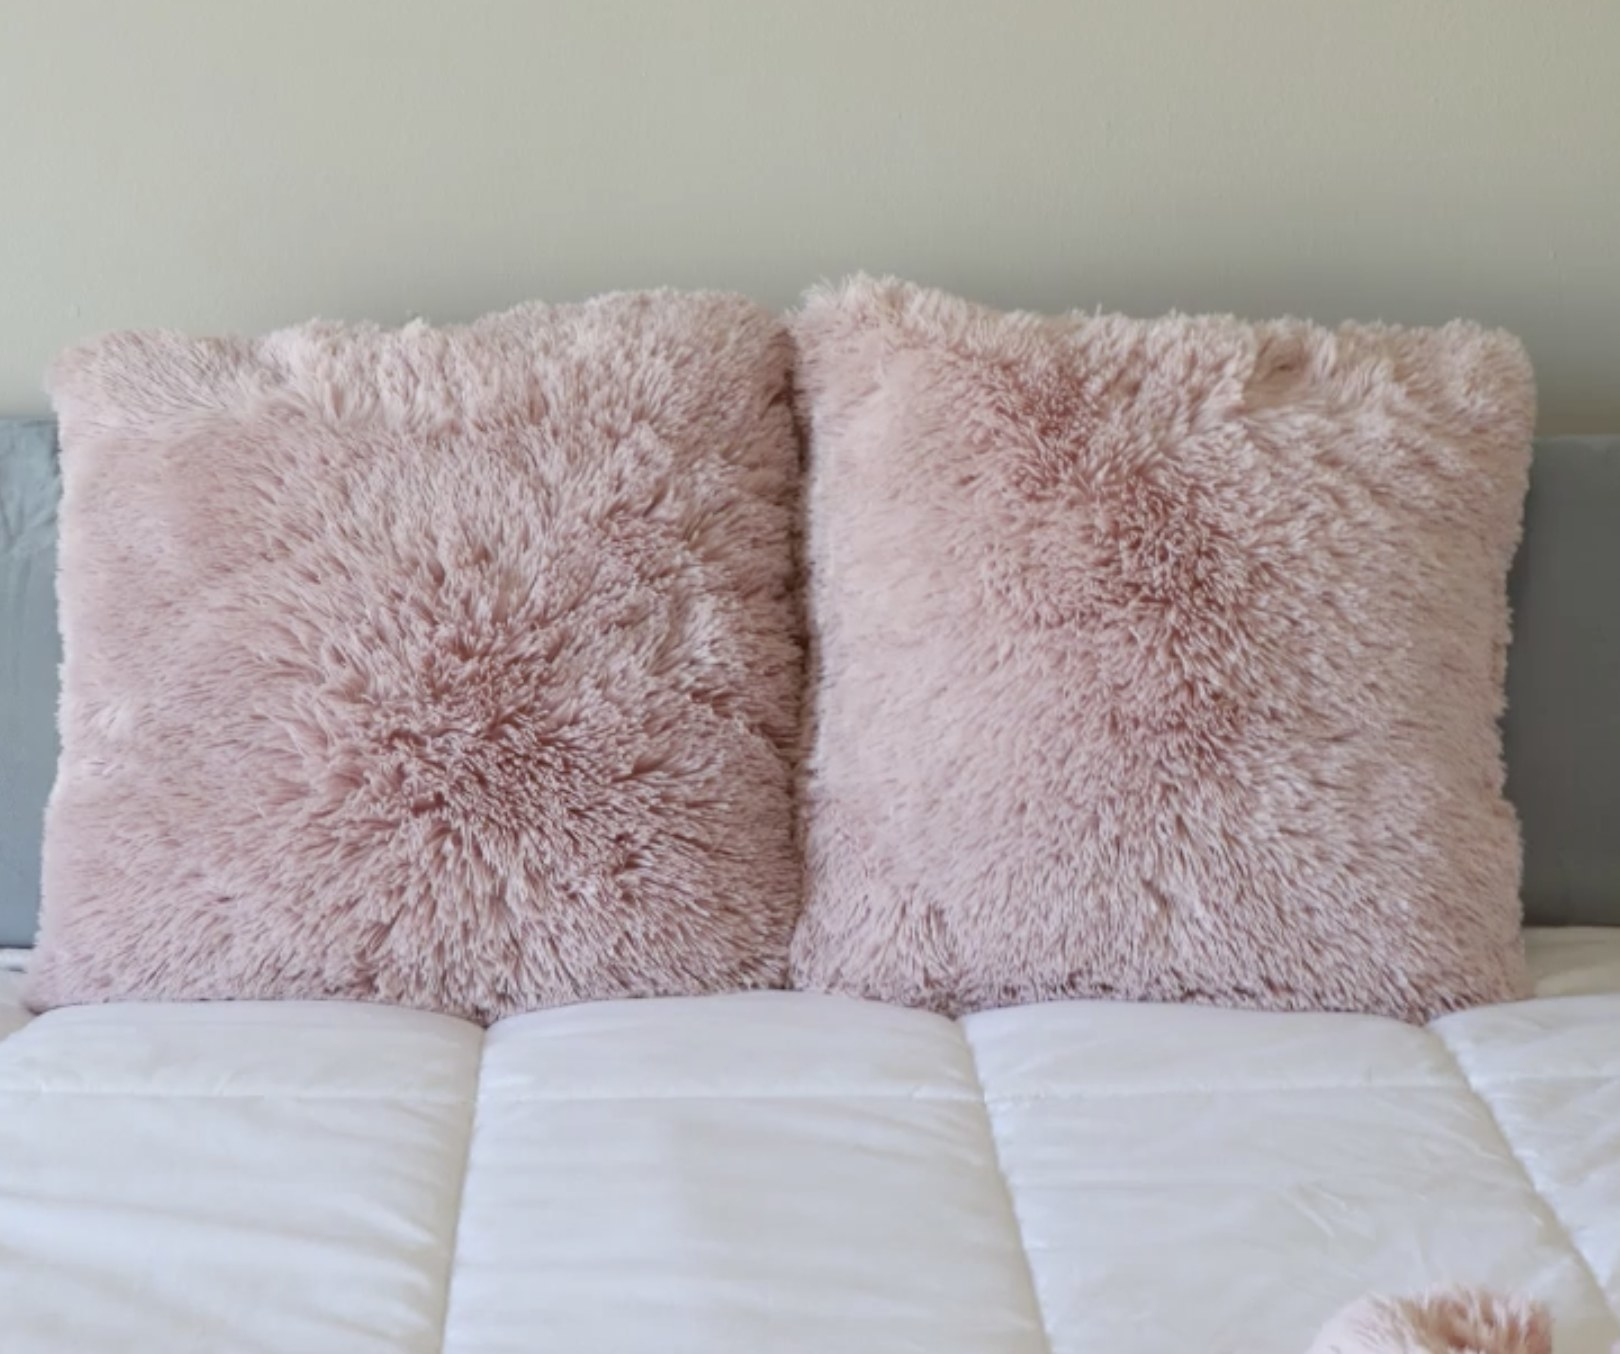 Two blush pink faux fur throw pillows on a bed